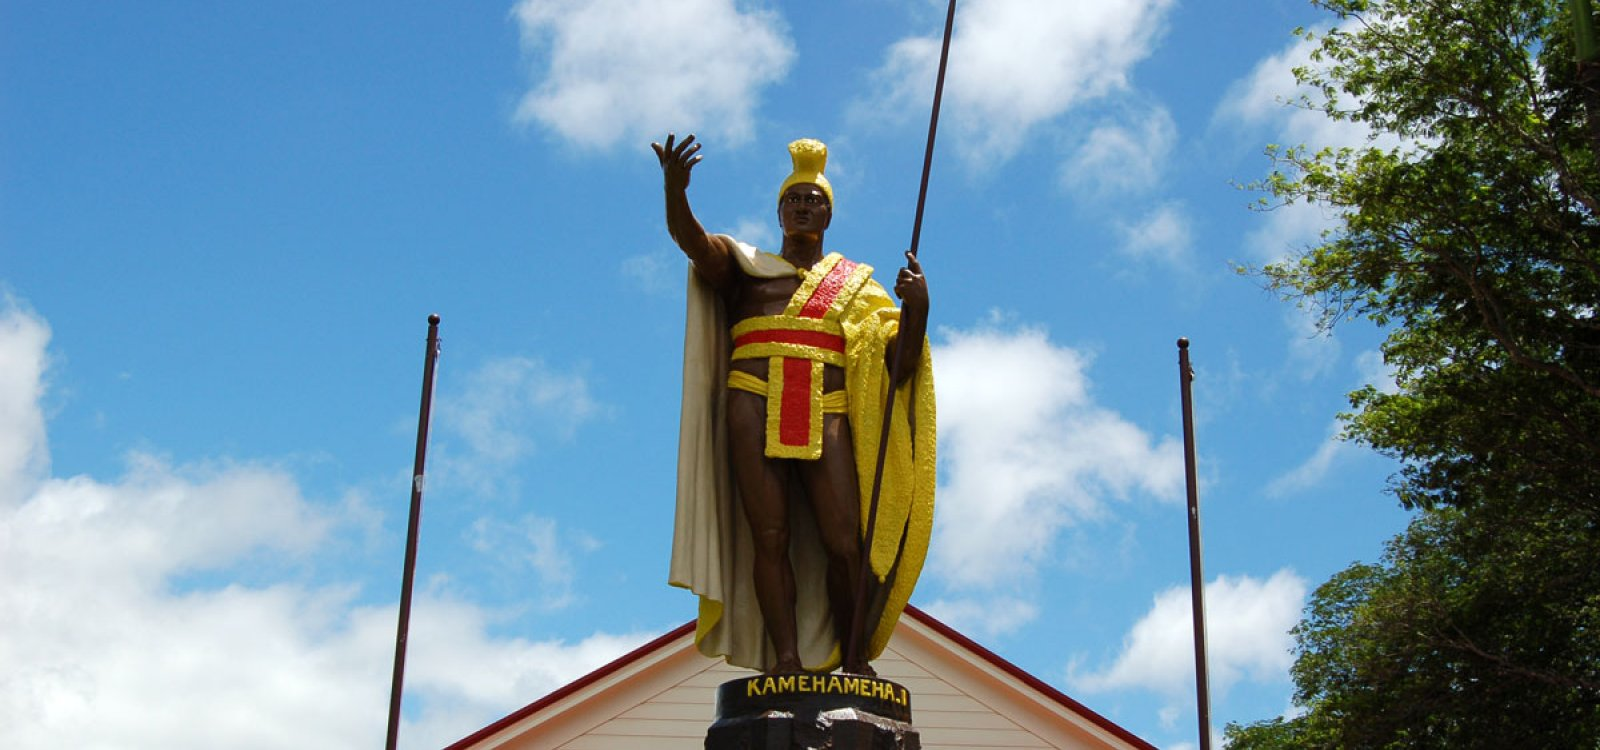 king kamehameha v essay When you think of king kamehameha's family life following is a listing of kamehameha's wives and approximate dates of when they got together 1766 kalola.